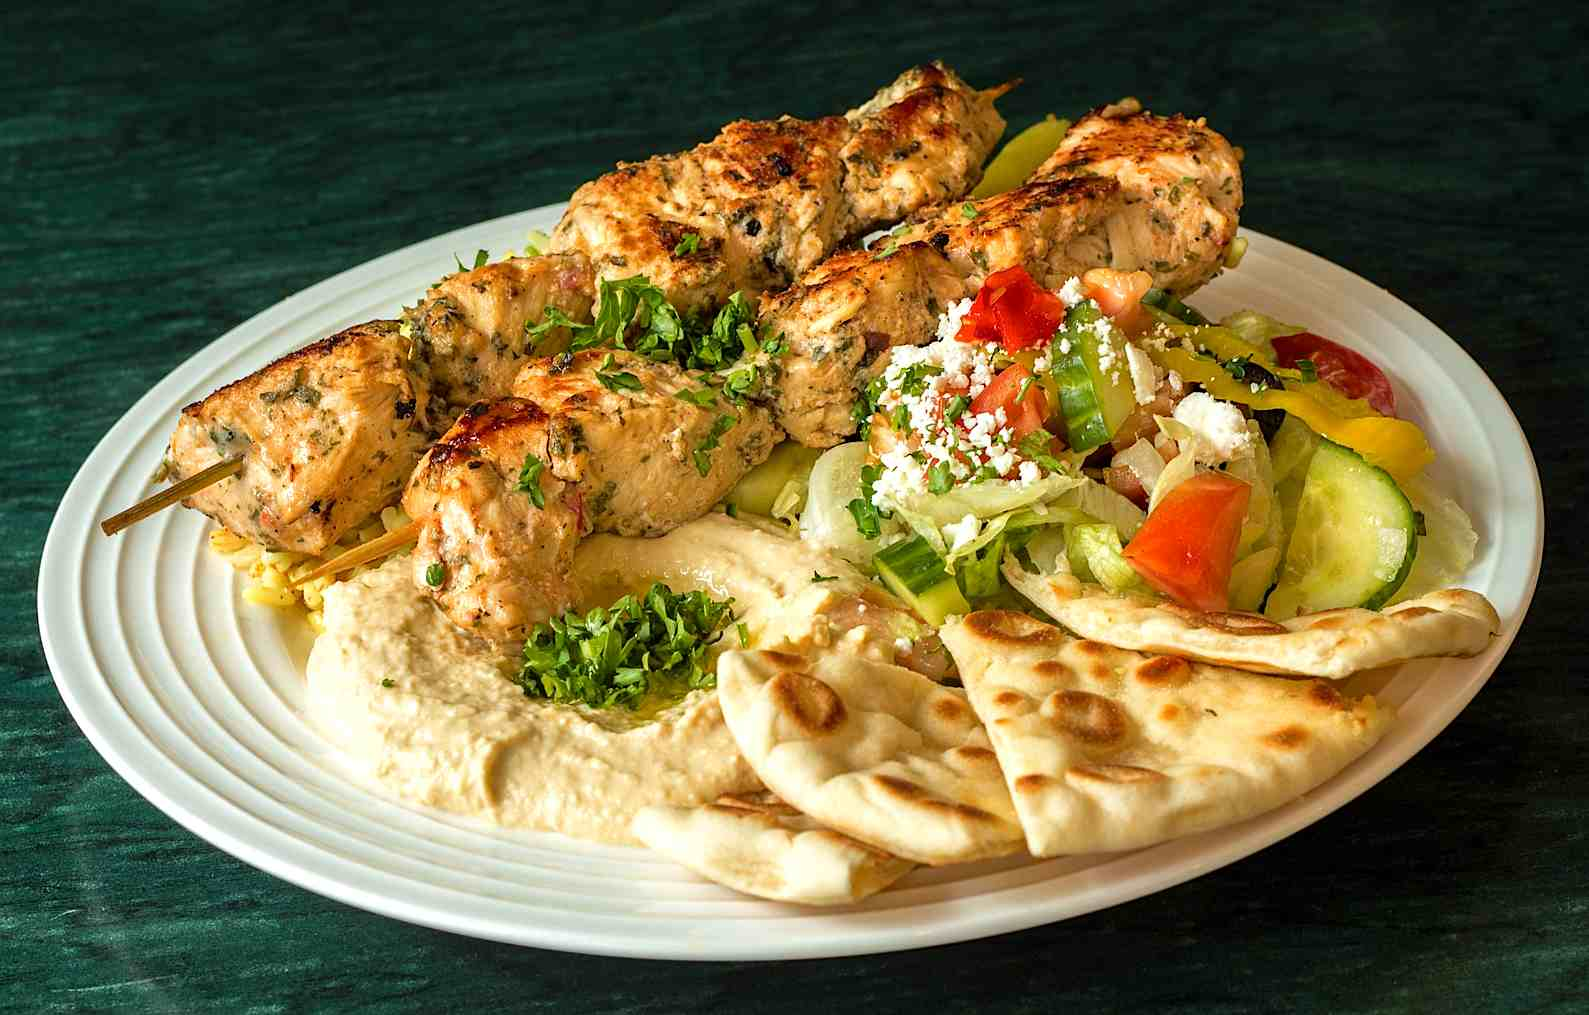 Chicken Kabob Platter - $10.99